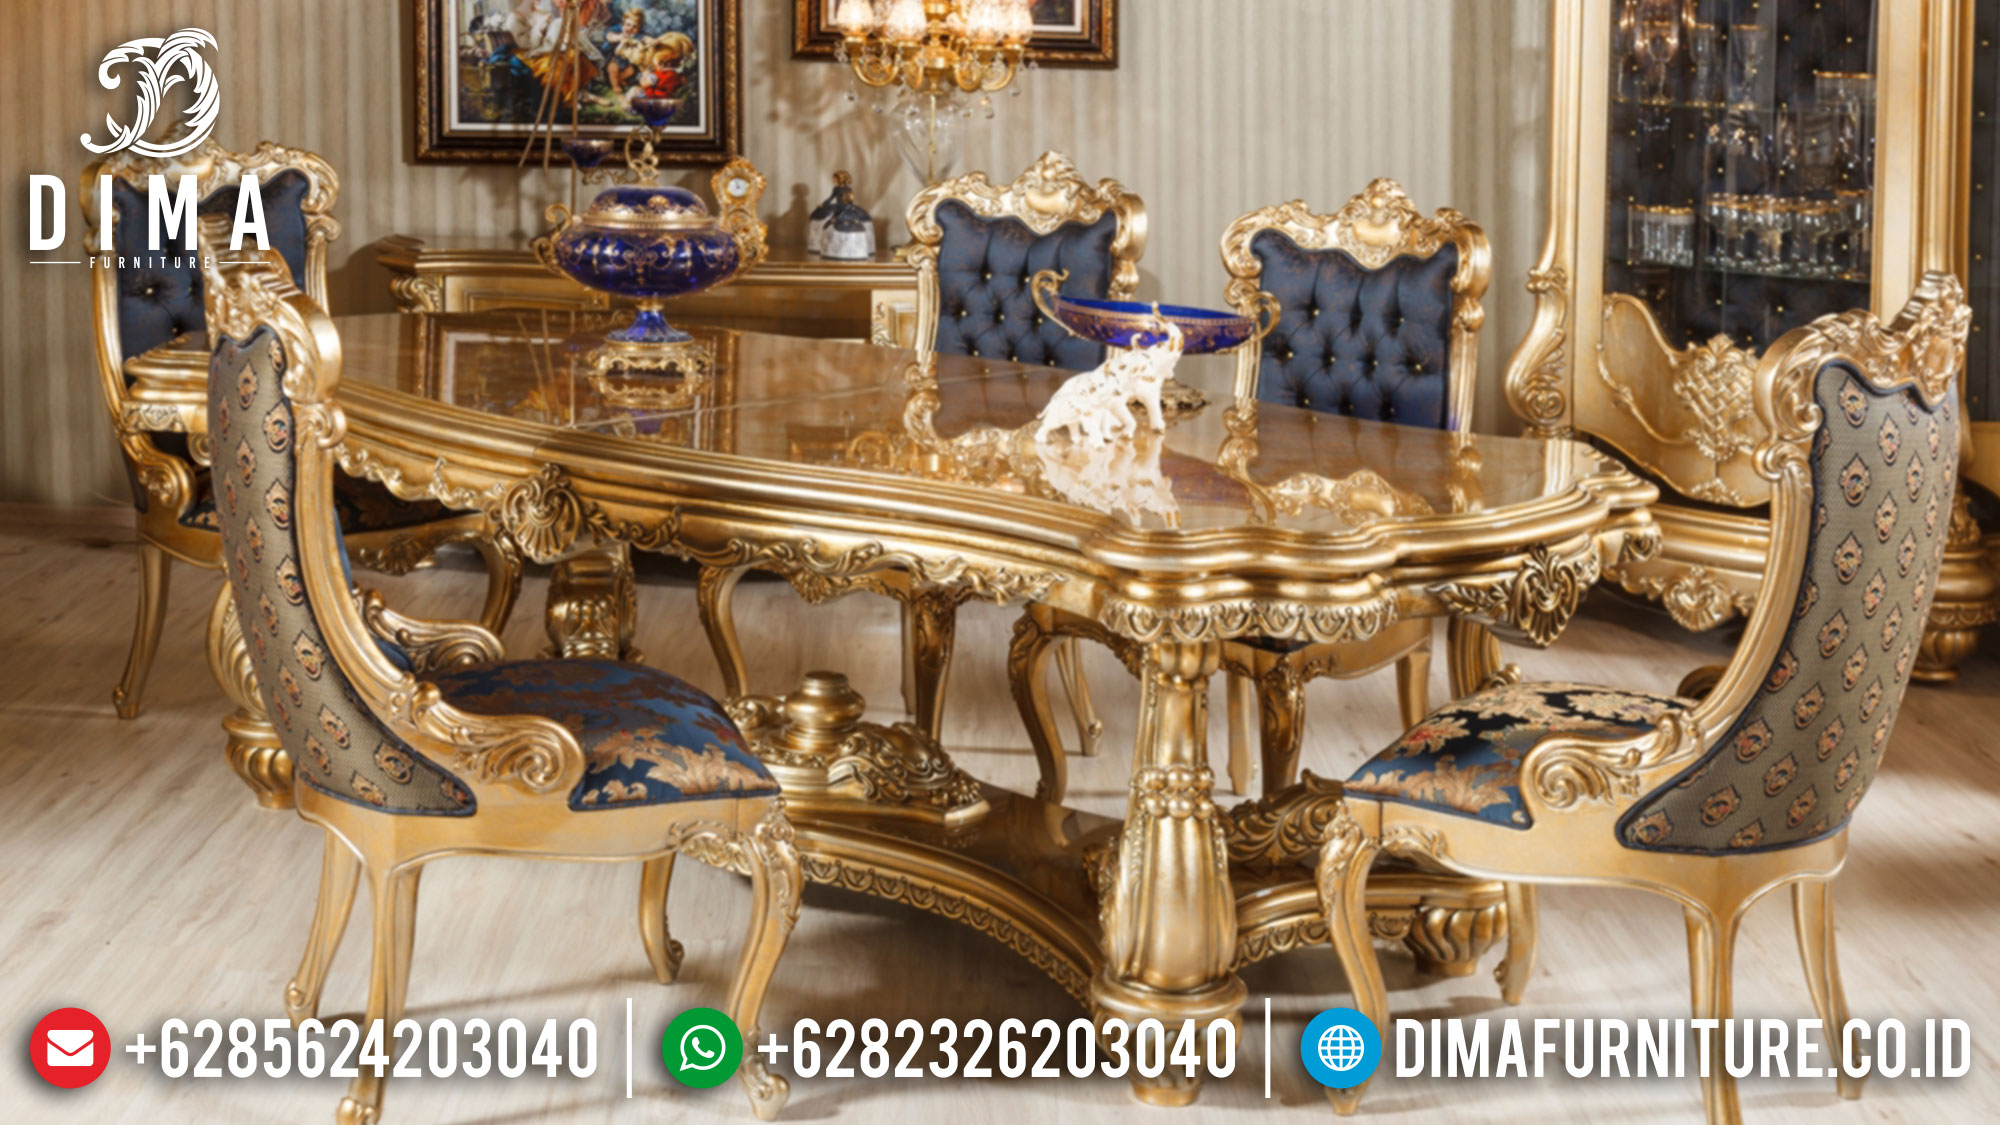 Classic Set Meja Makan Mewah Luxury Golden Stone Color High Quality Product St-1250